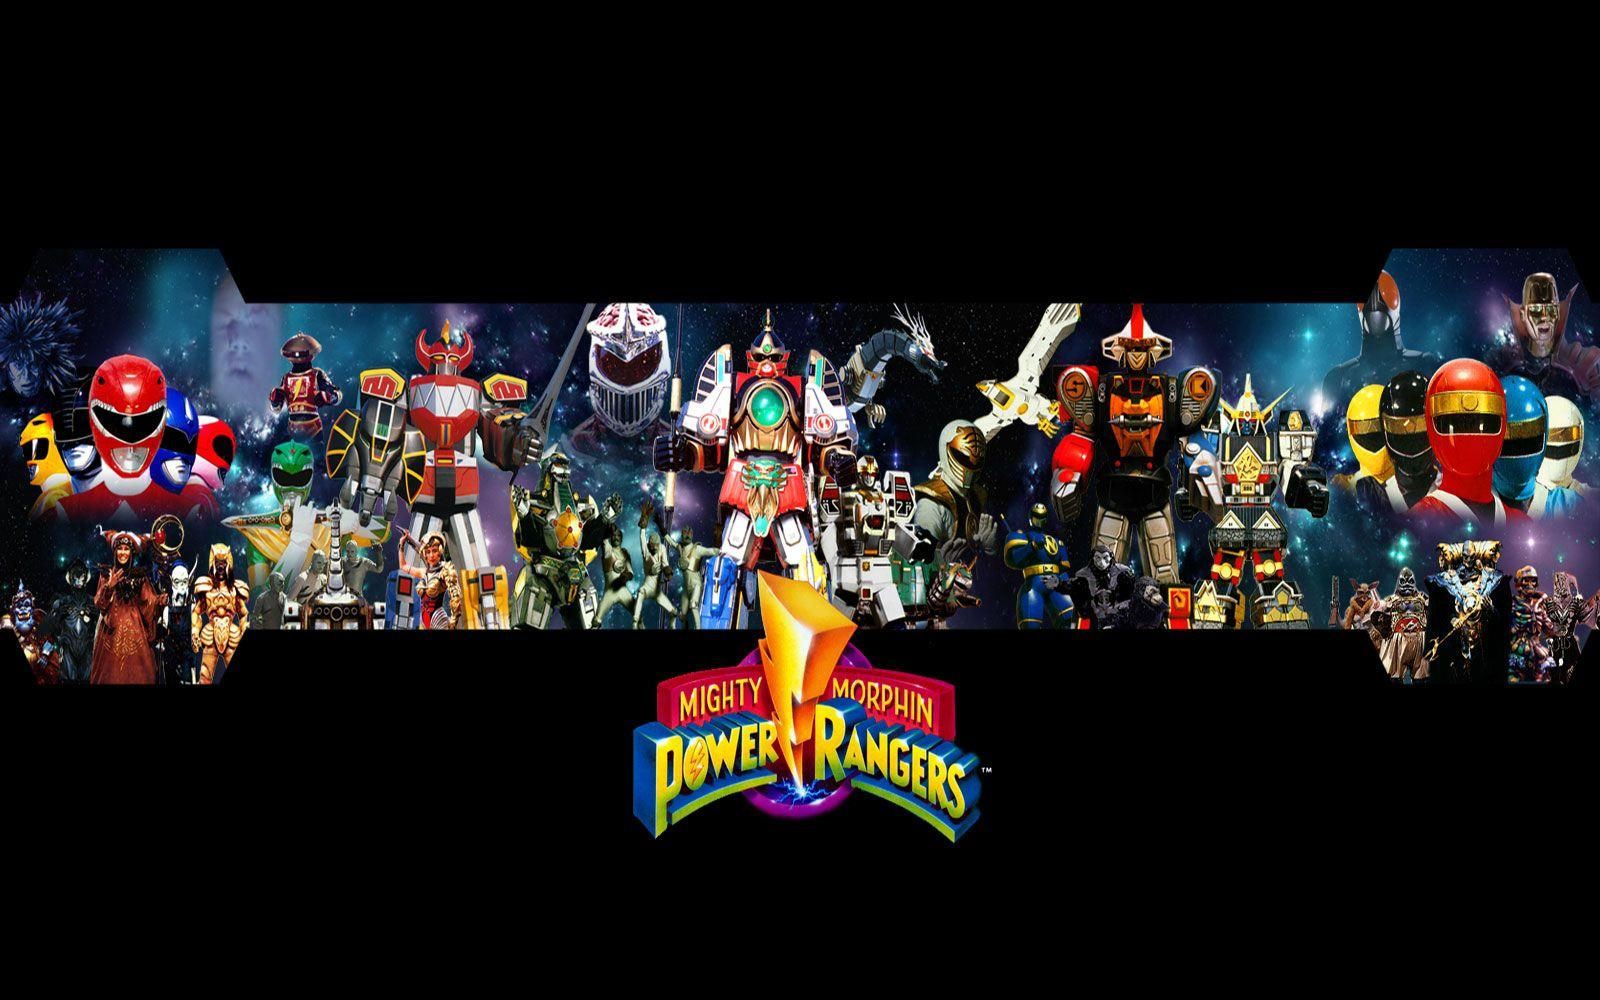 Power Rangers Megazord Wallpapers Wallpaper Cave Wallpaper